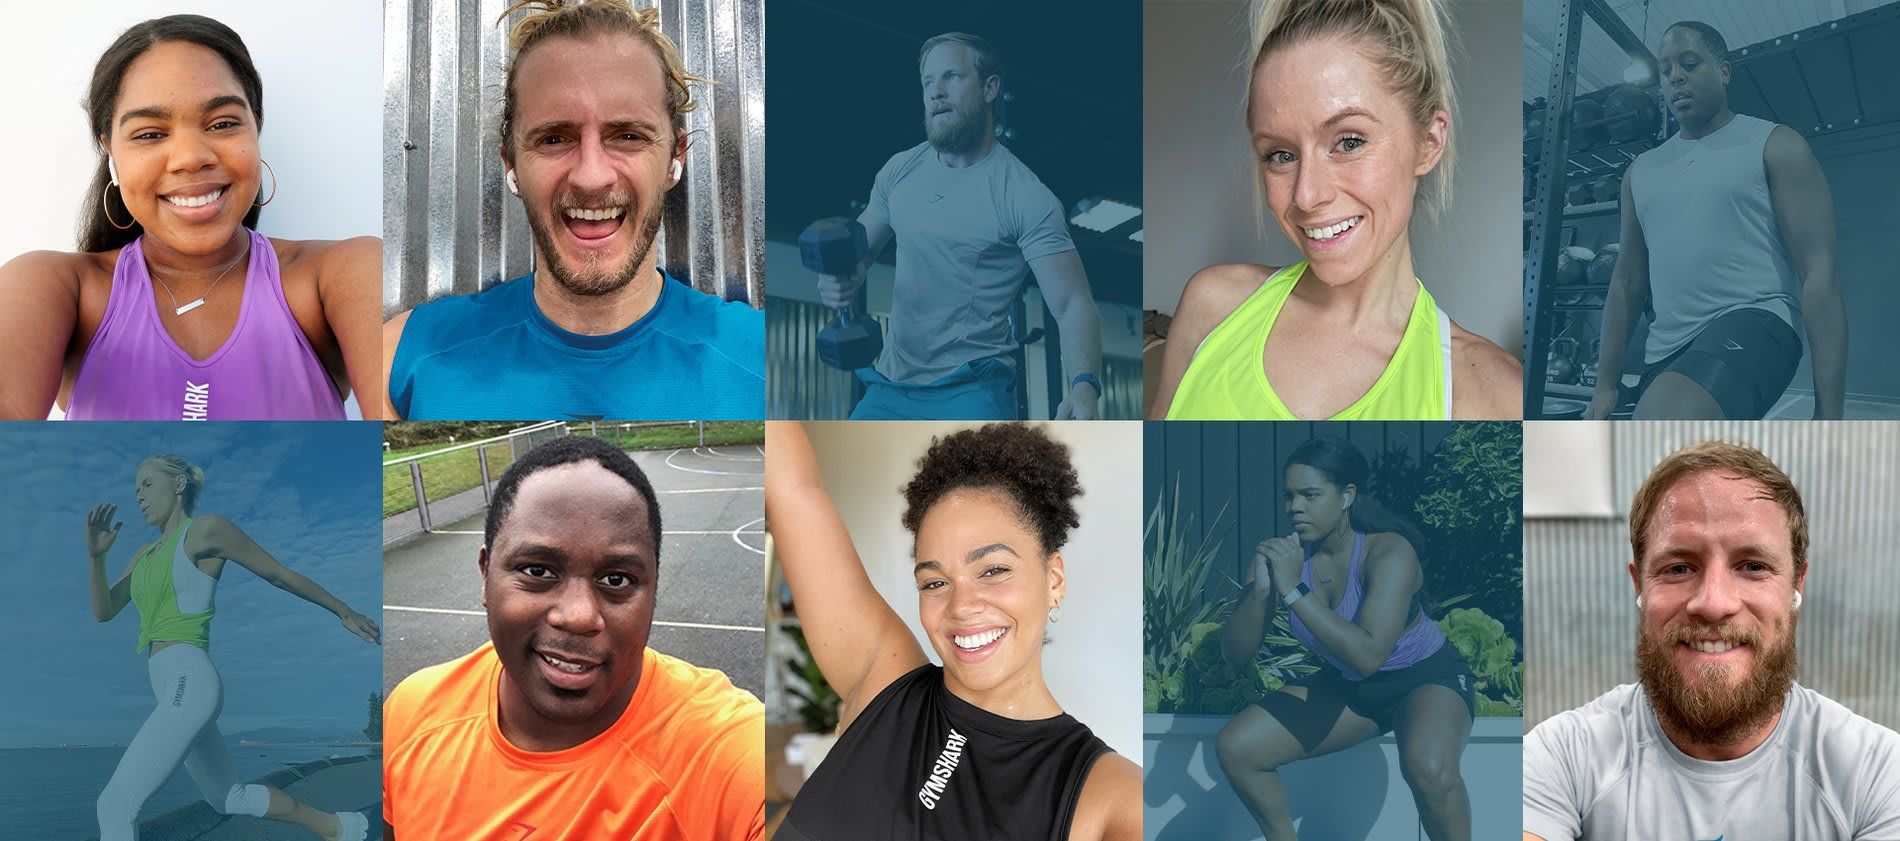 Collage of men and women working out and sweating for their goals in the new Pulse and Aspect collections.